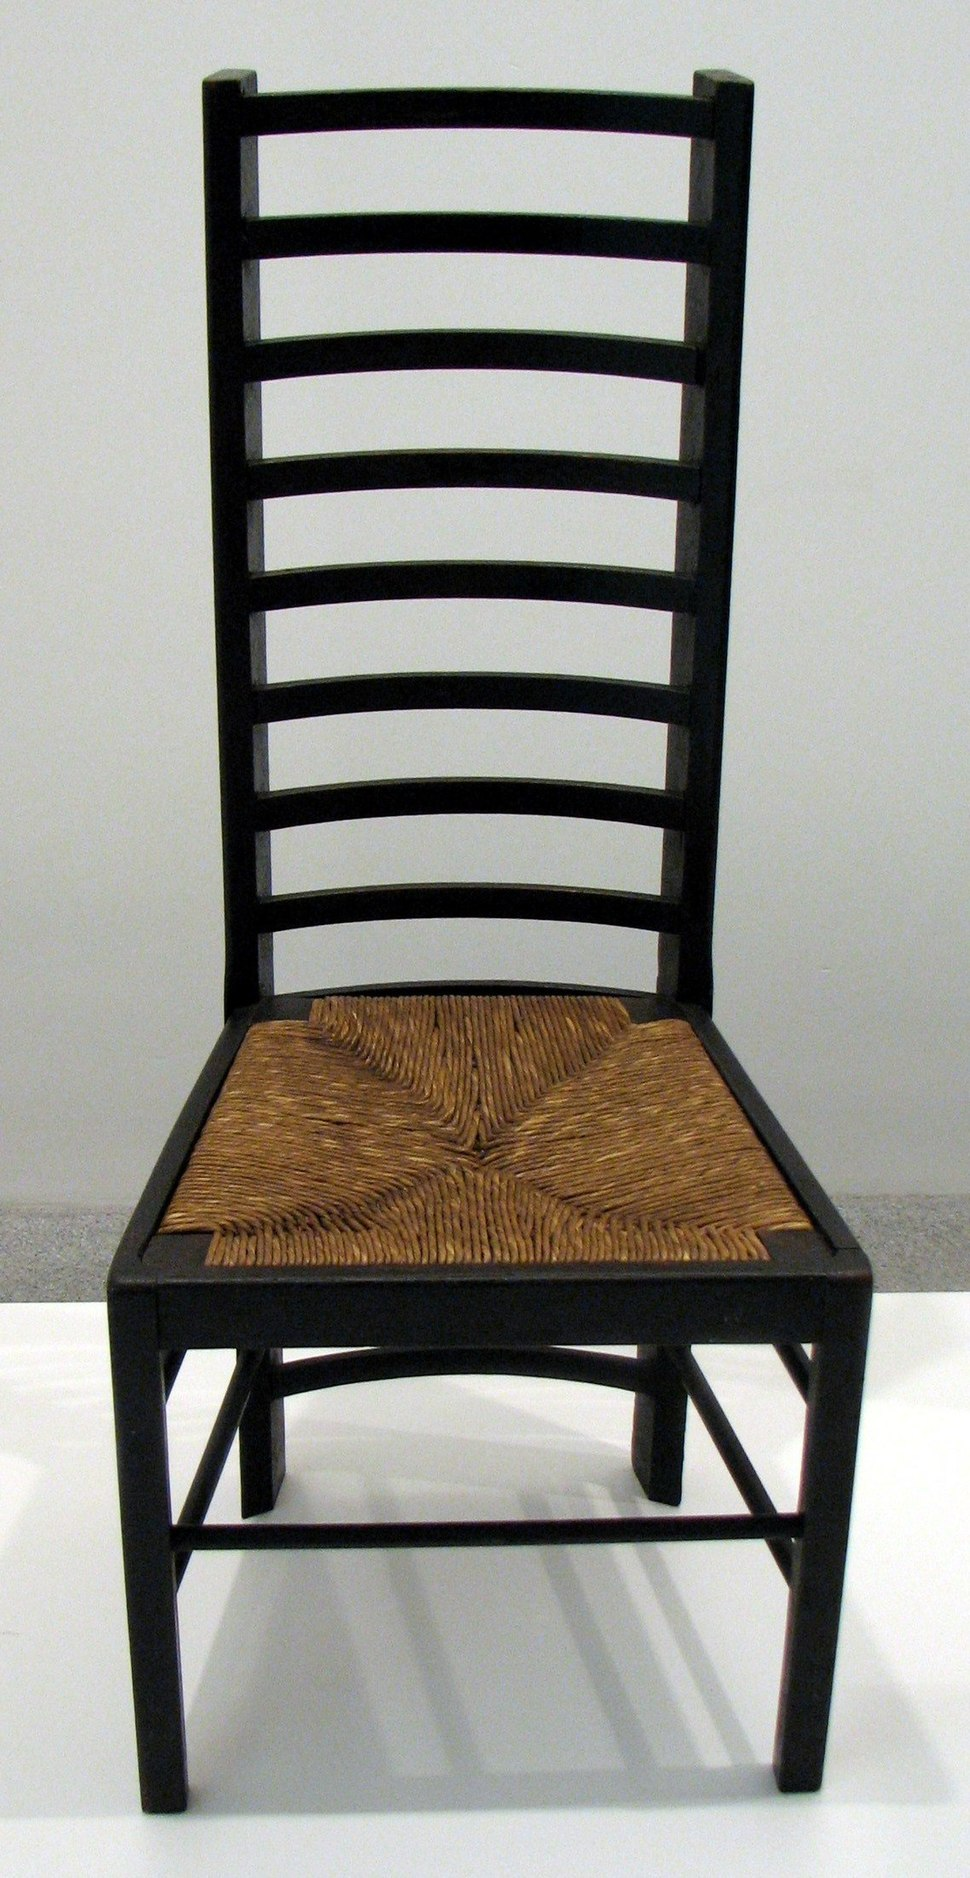 Charles Rennie Mackintosh - Chair - 1903